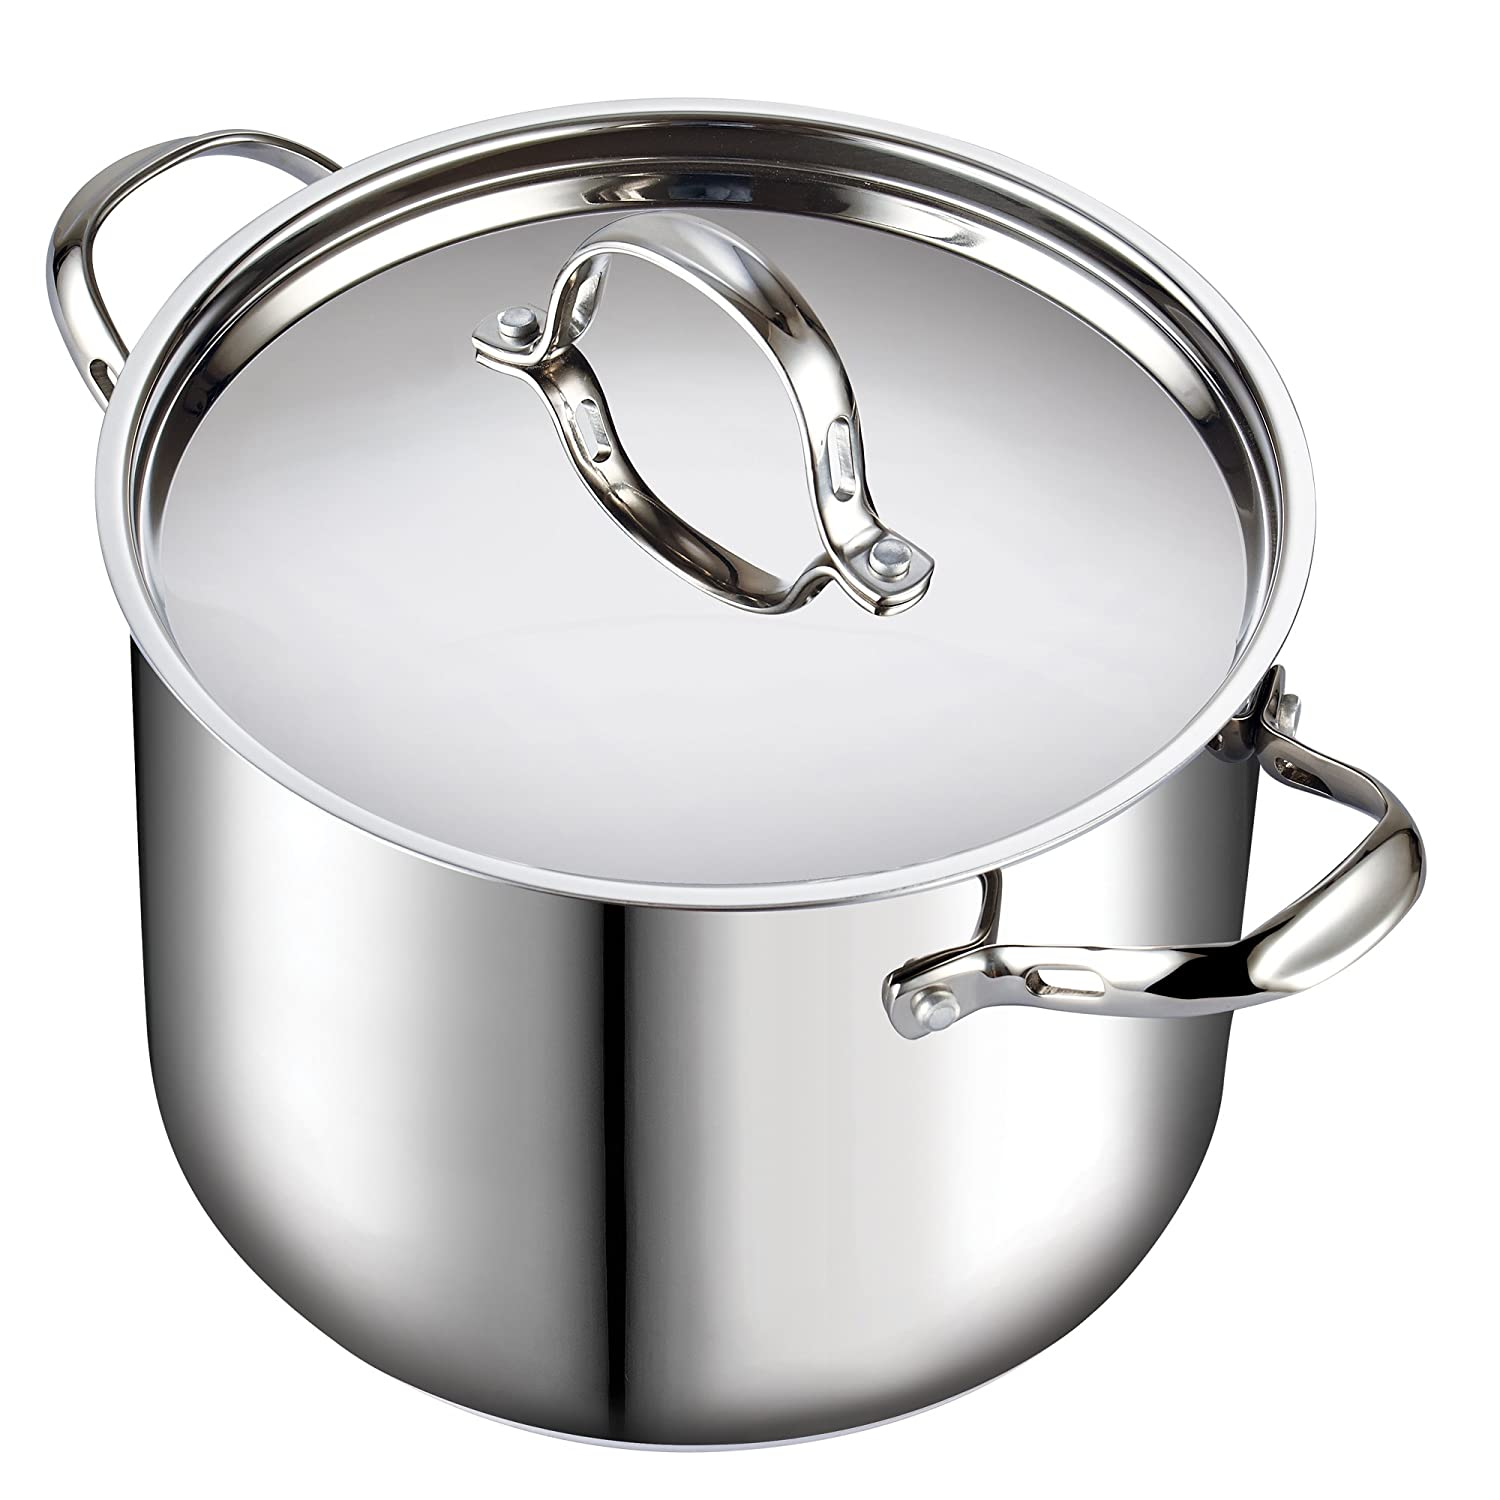 Cooks Standard 02520 Quart Classic Stainless Steel Stockpot with Lid, 12-QT, Silver